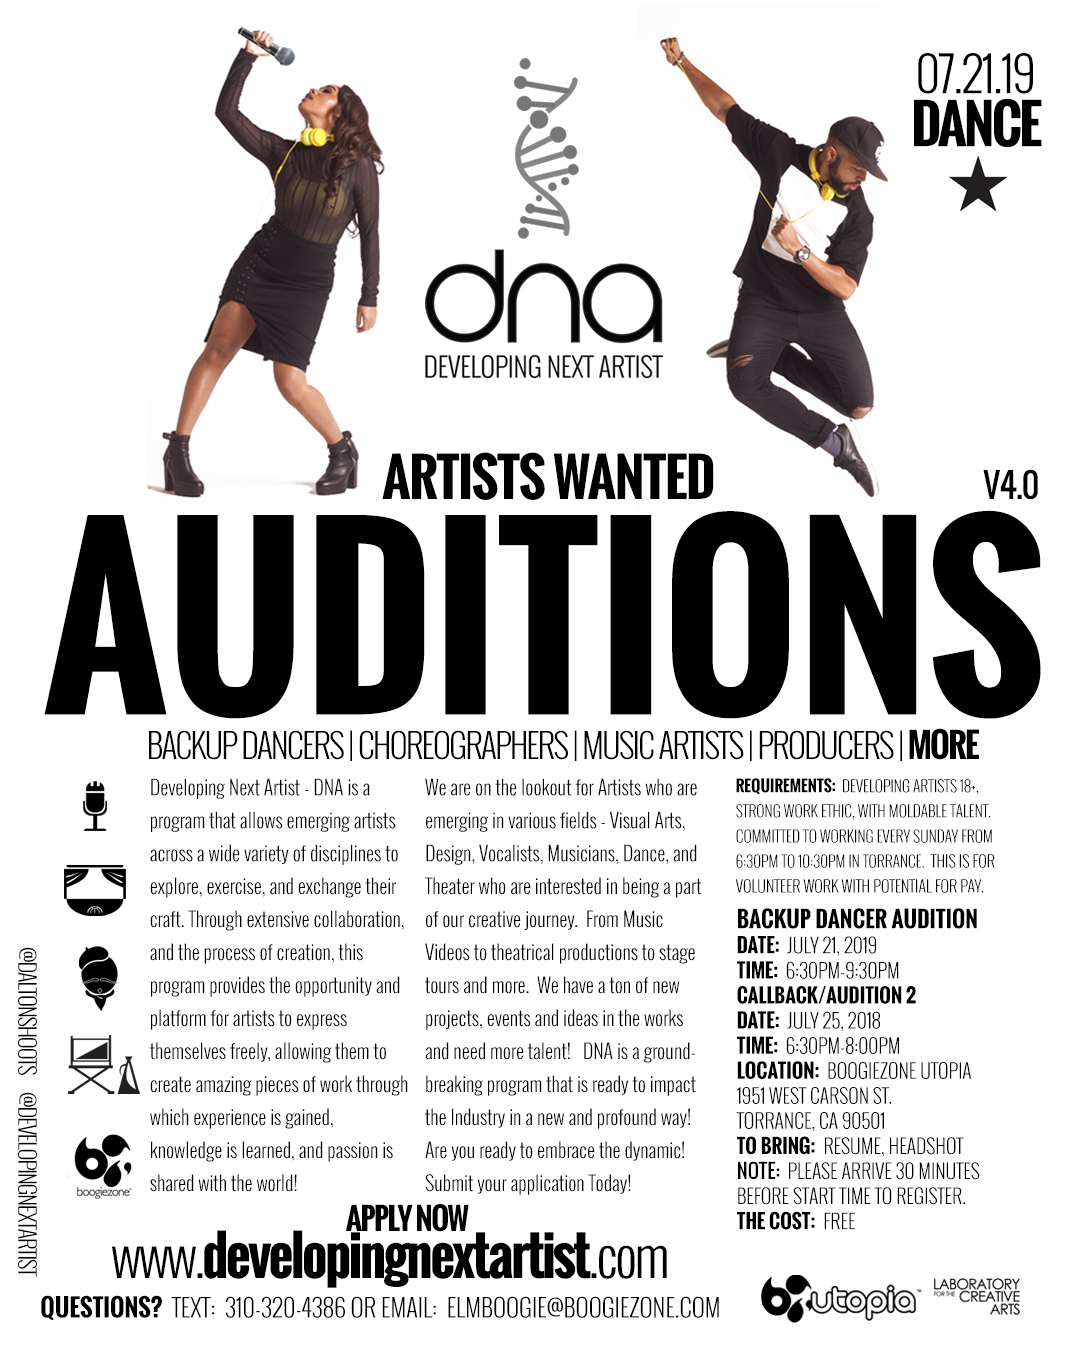 AUDITION4.0_DETAILS.png